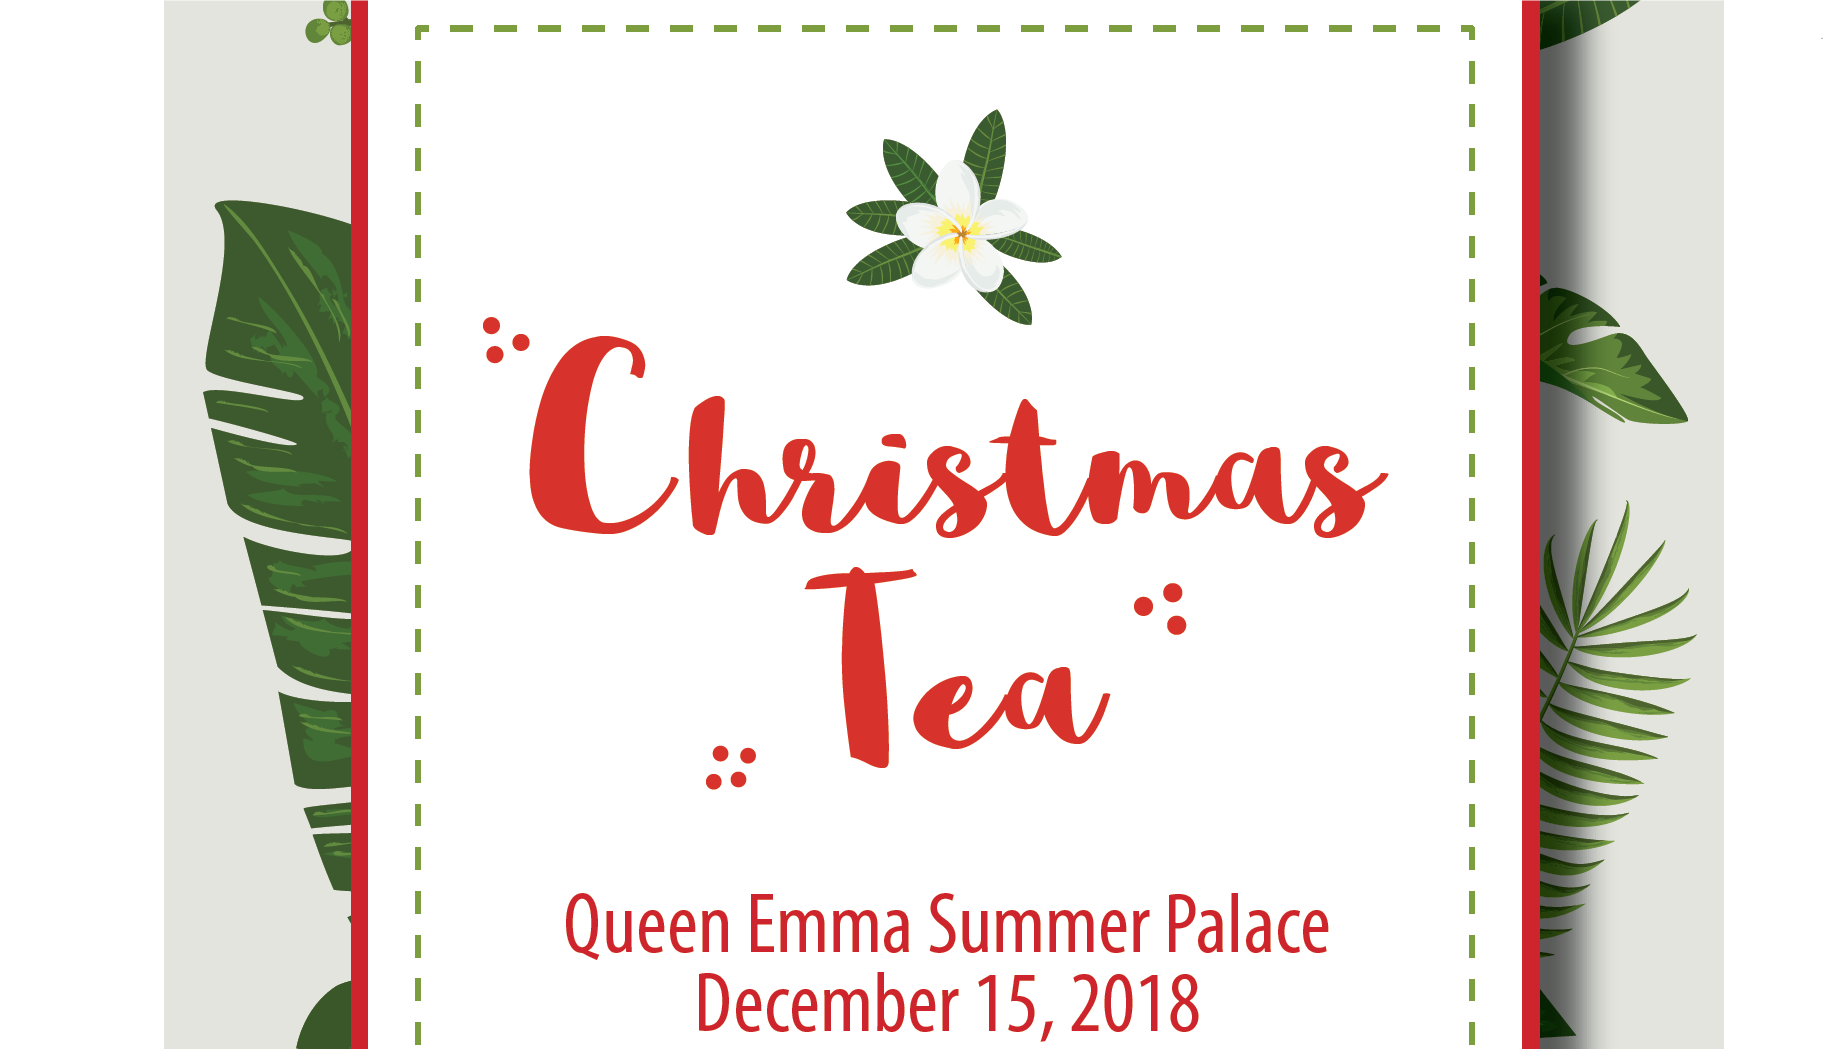 Annual Christmas Tea at Queen Emma Summer Palace.